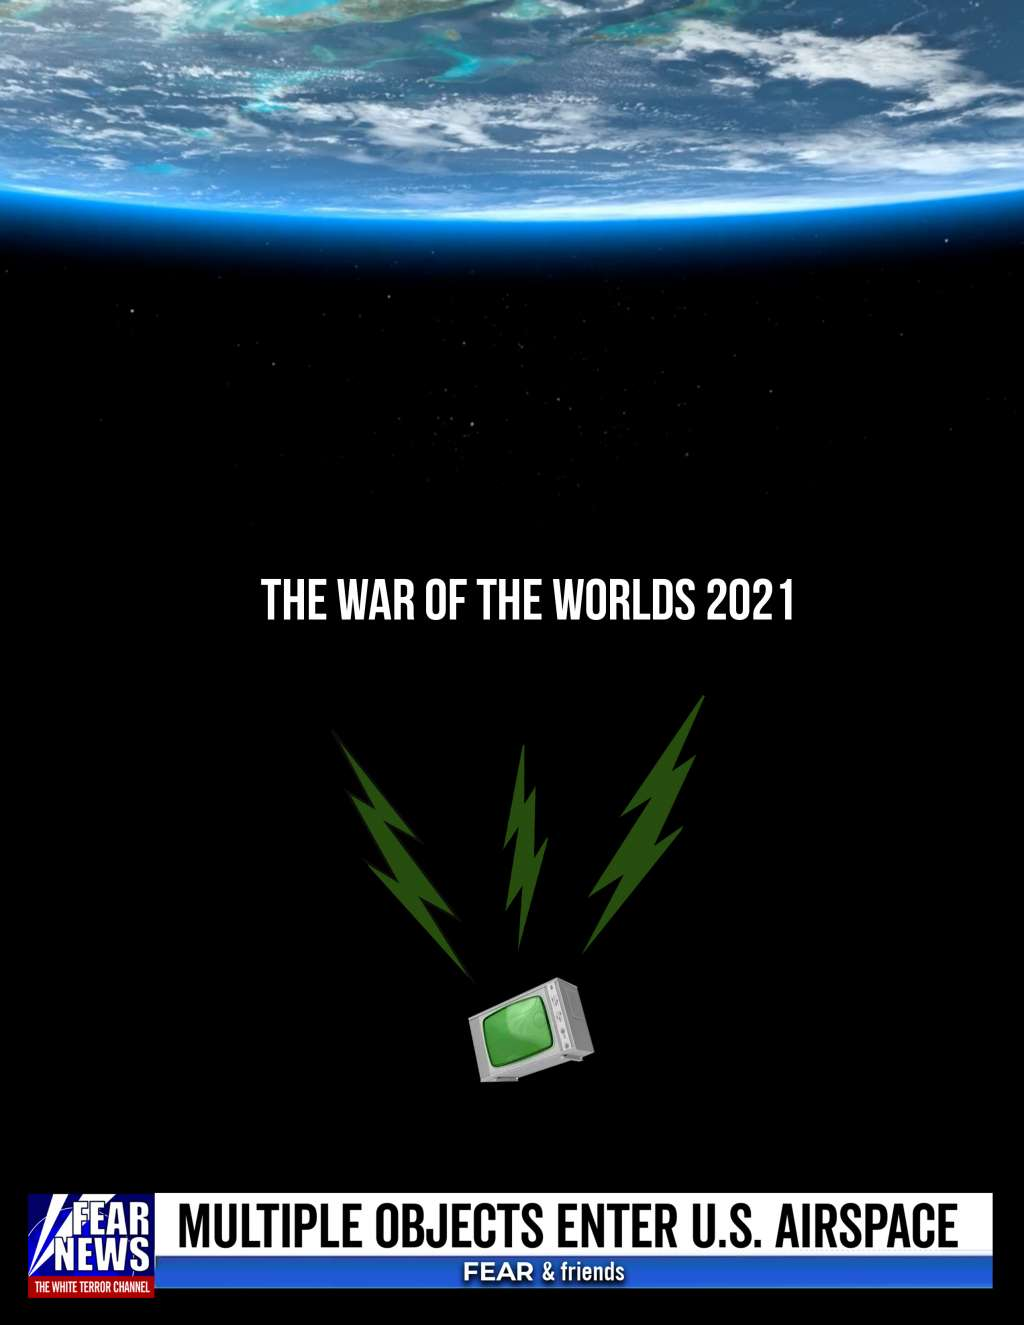 The War of the Worlds 2021 kapak